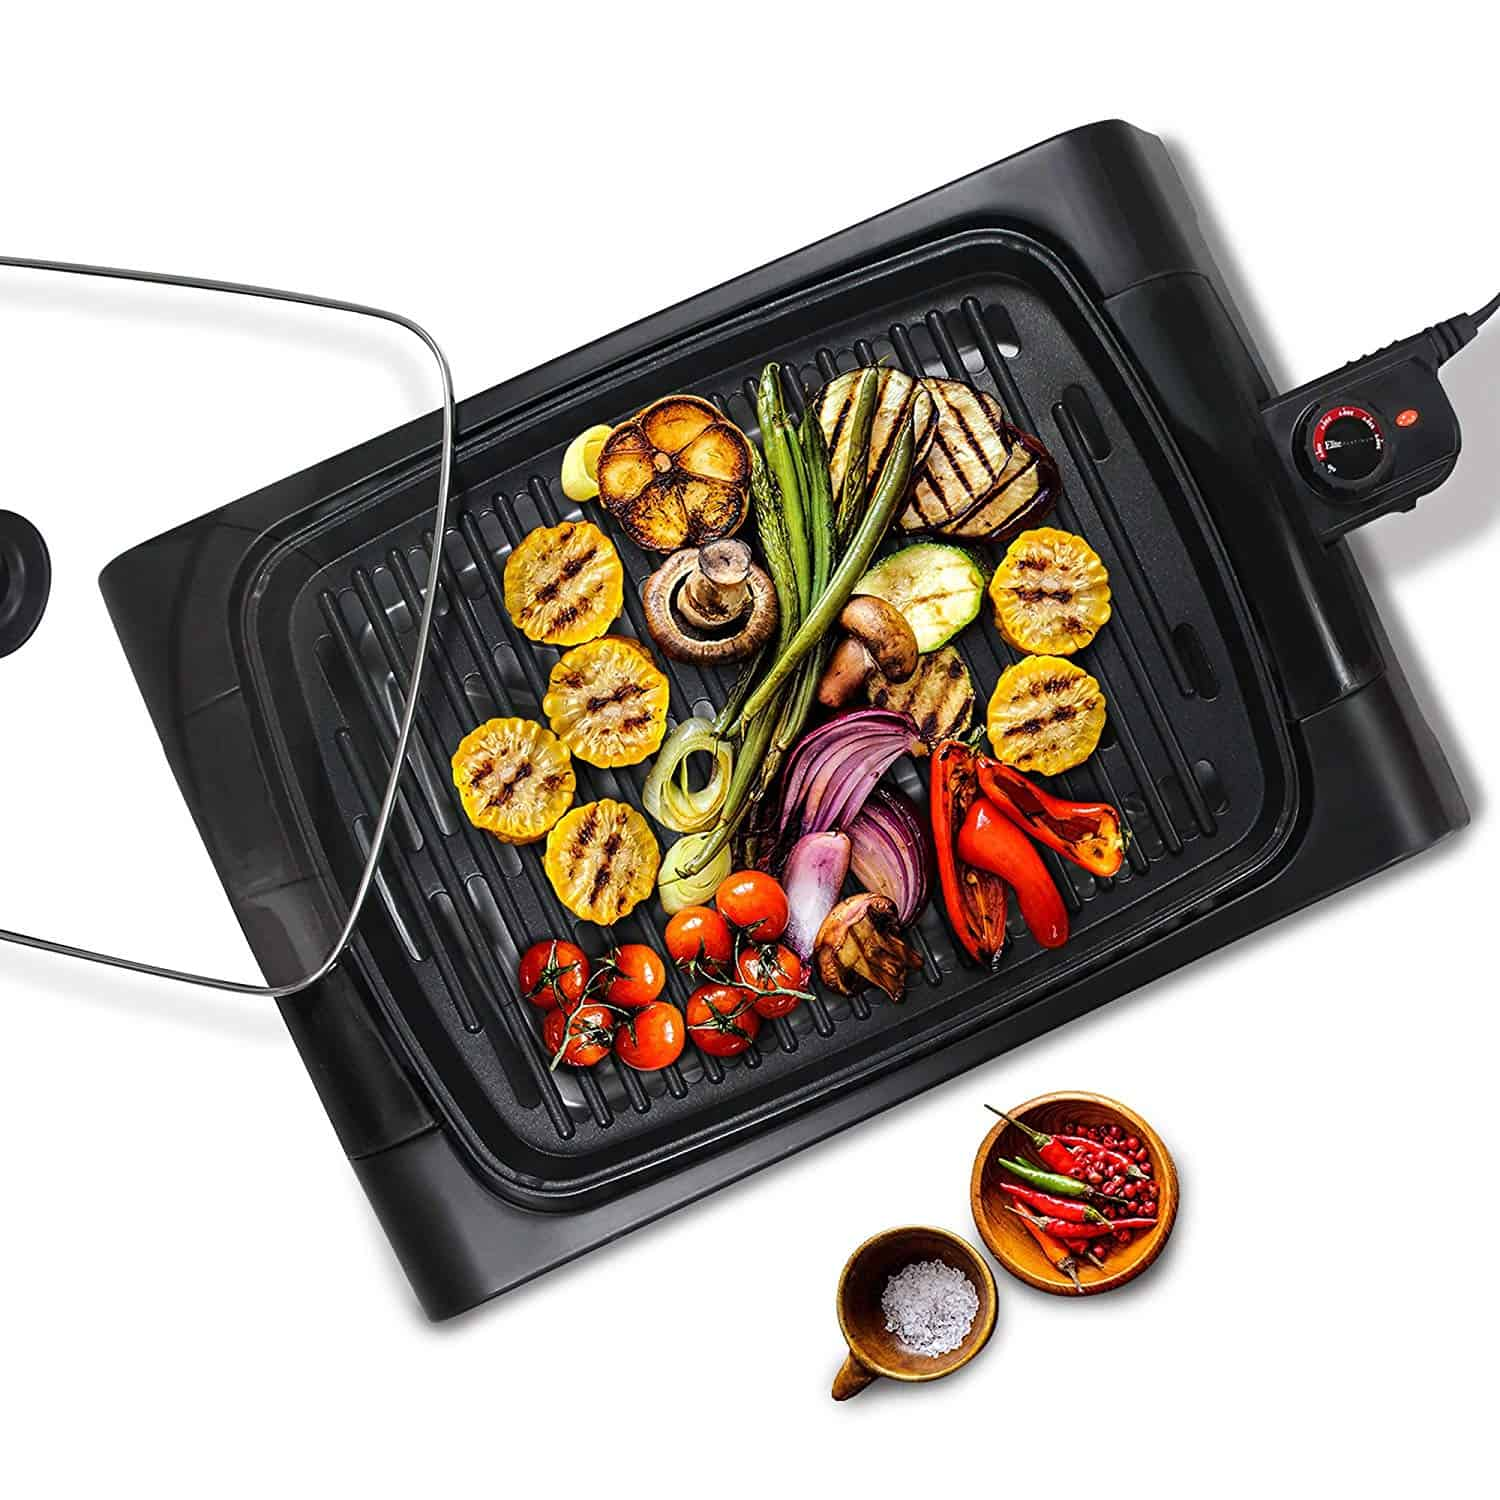 Maxi Matic tabletop grill for your yakitori